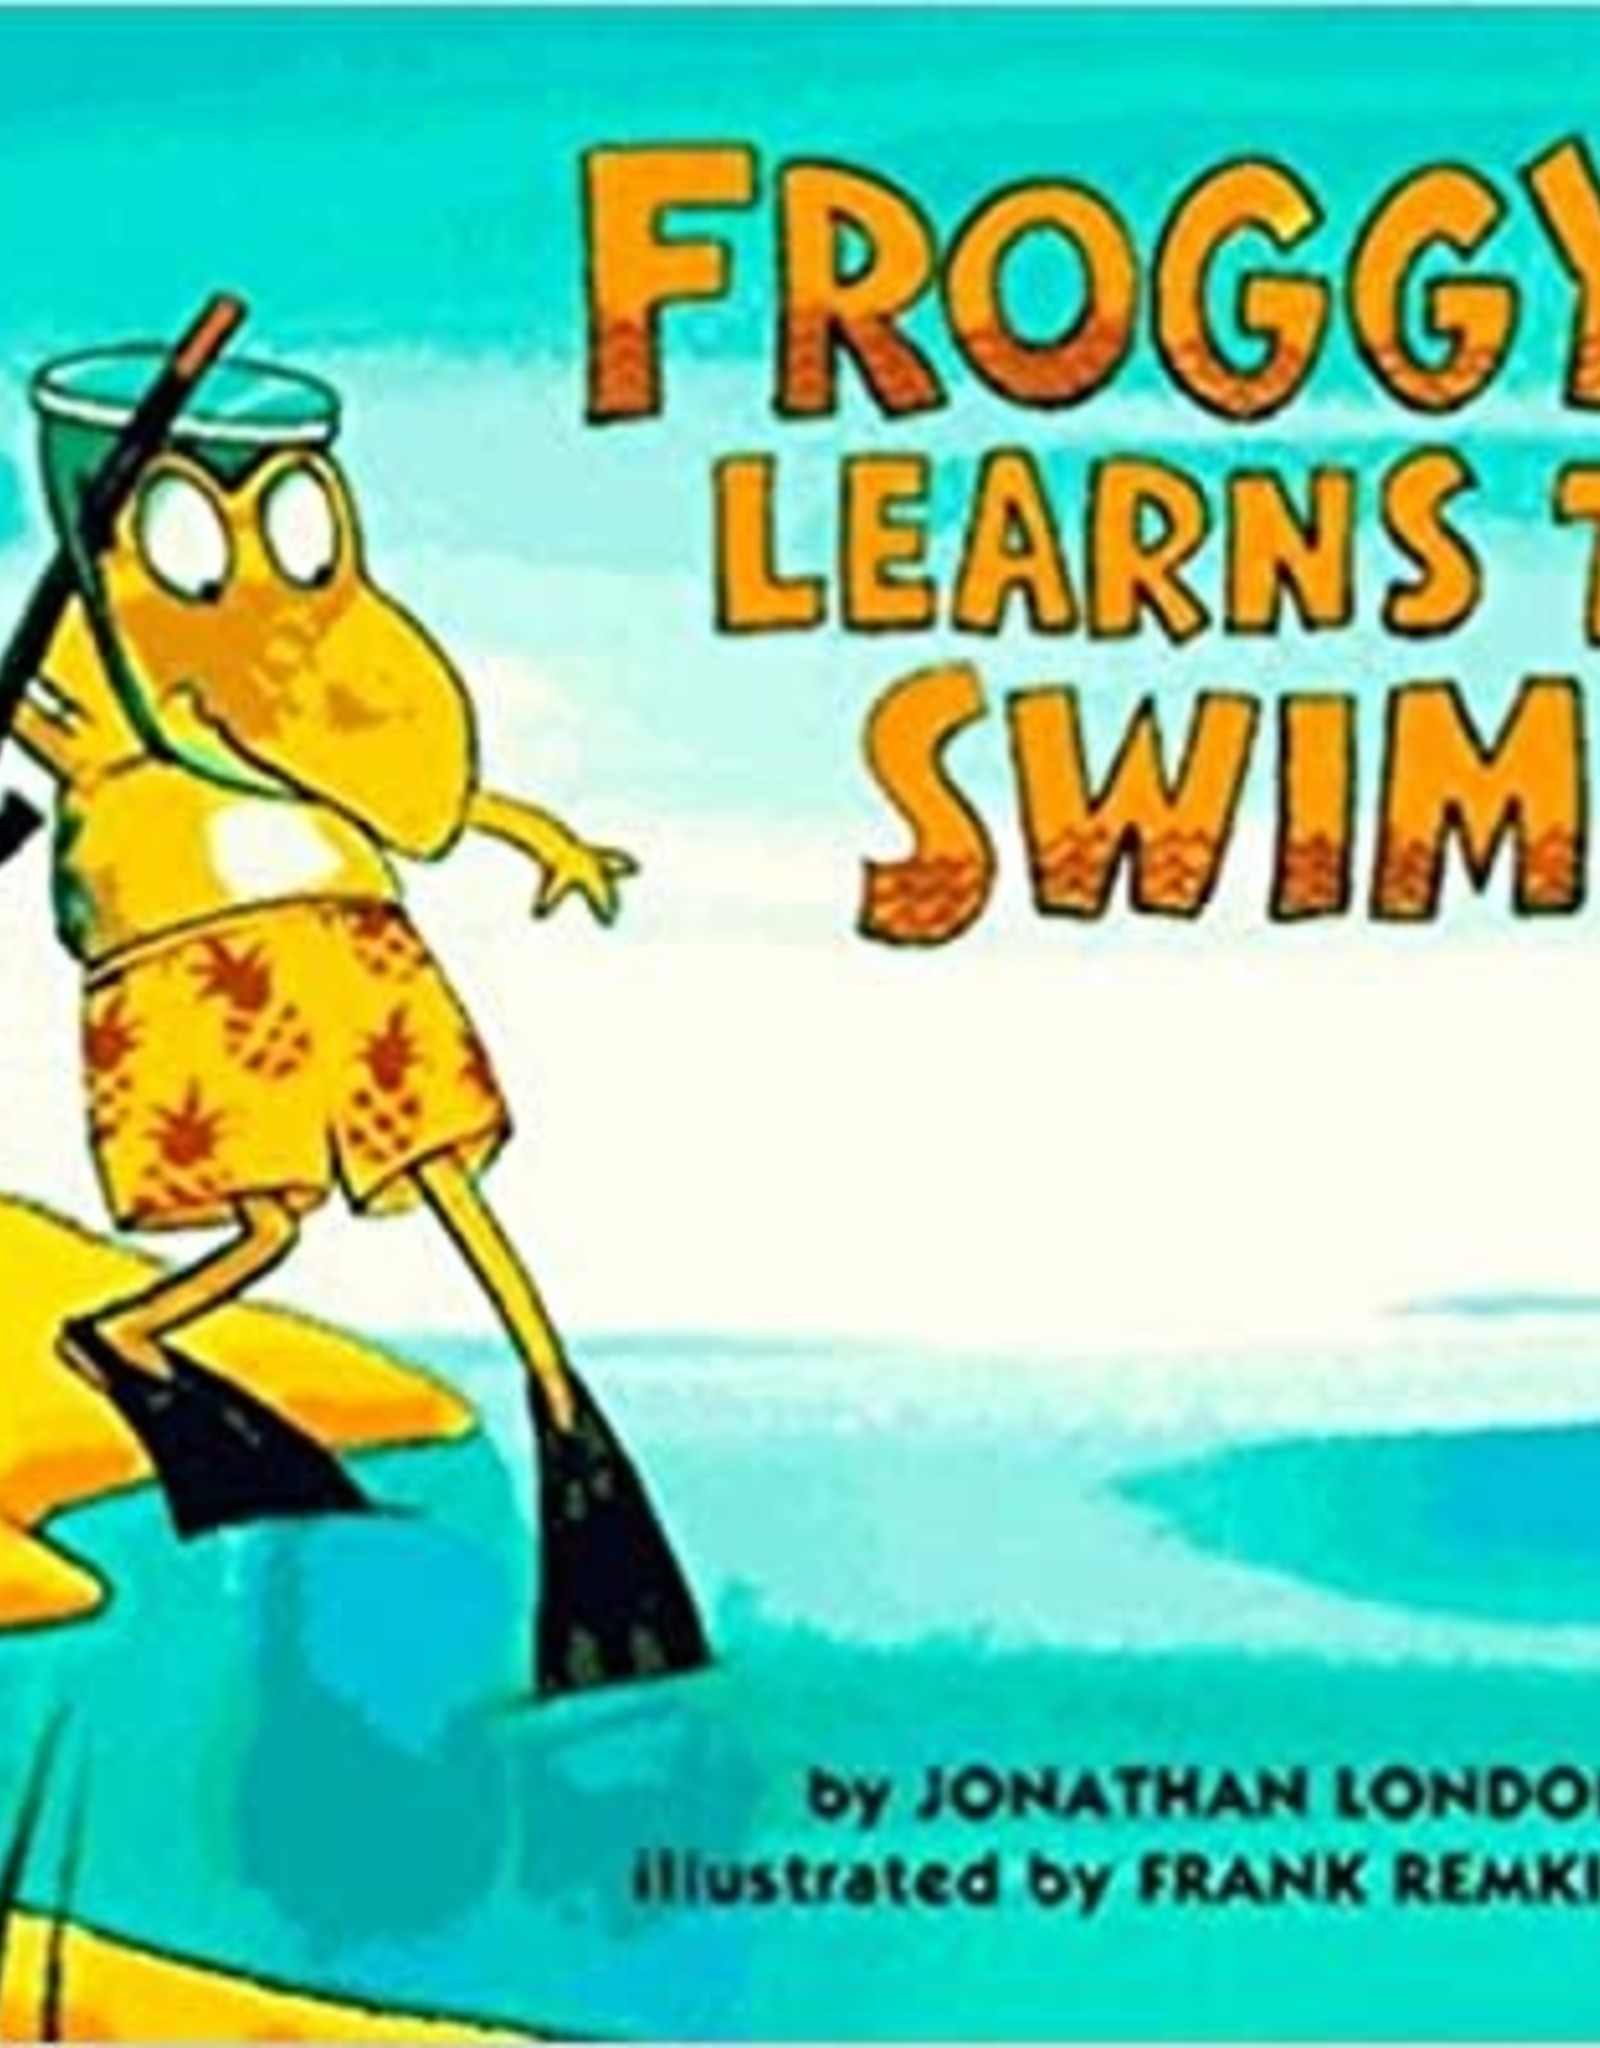 Penguin Random House Froggy Learns to Swim